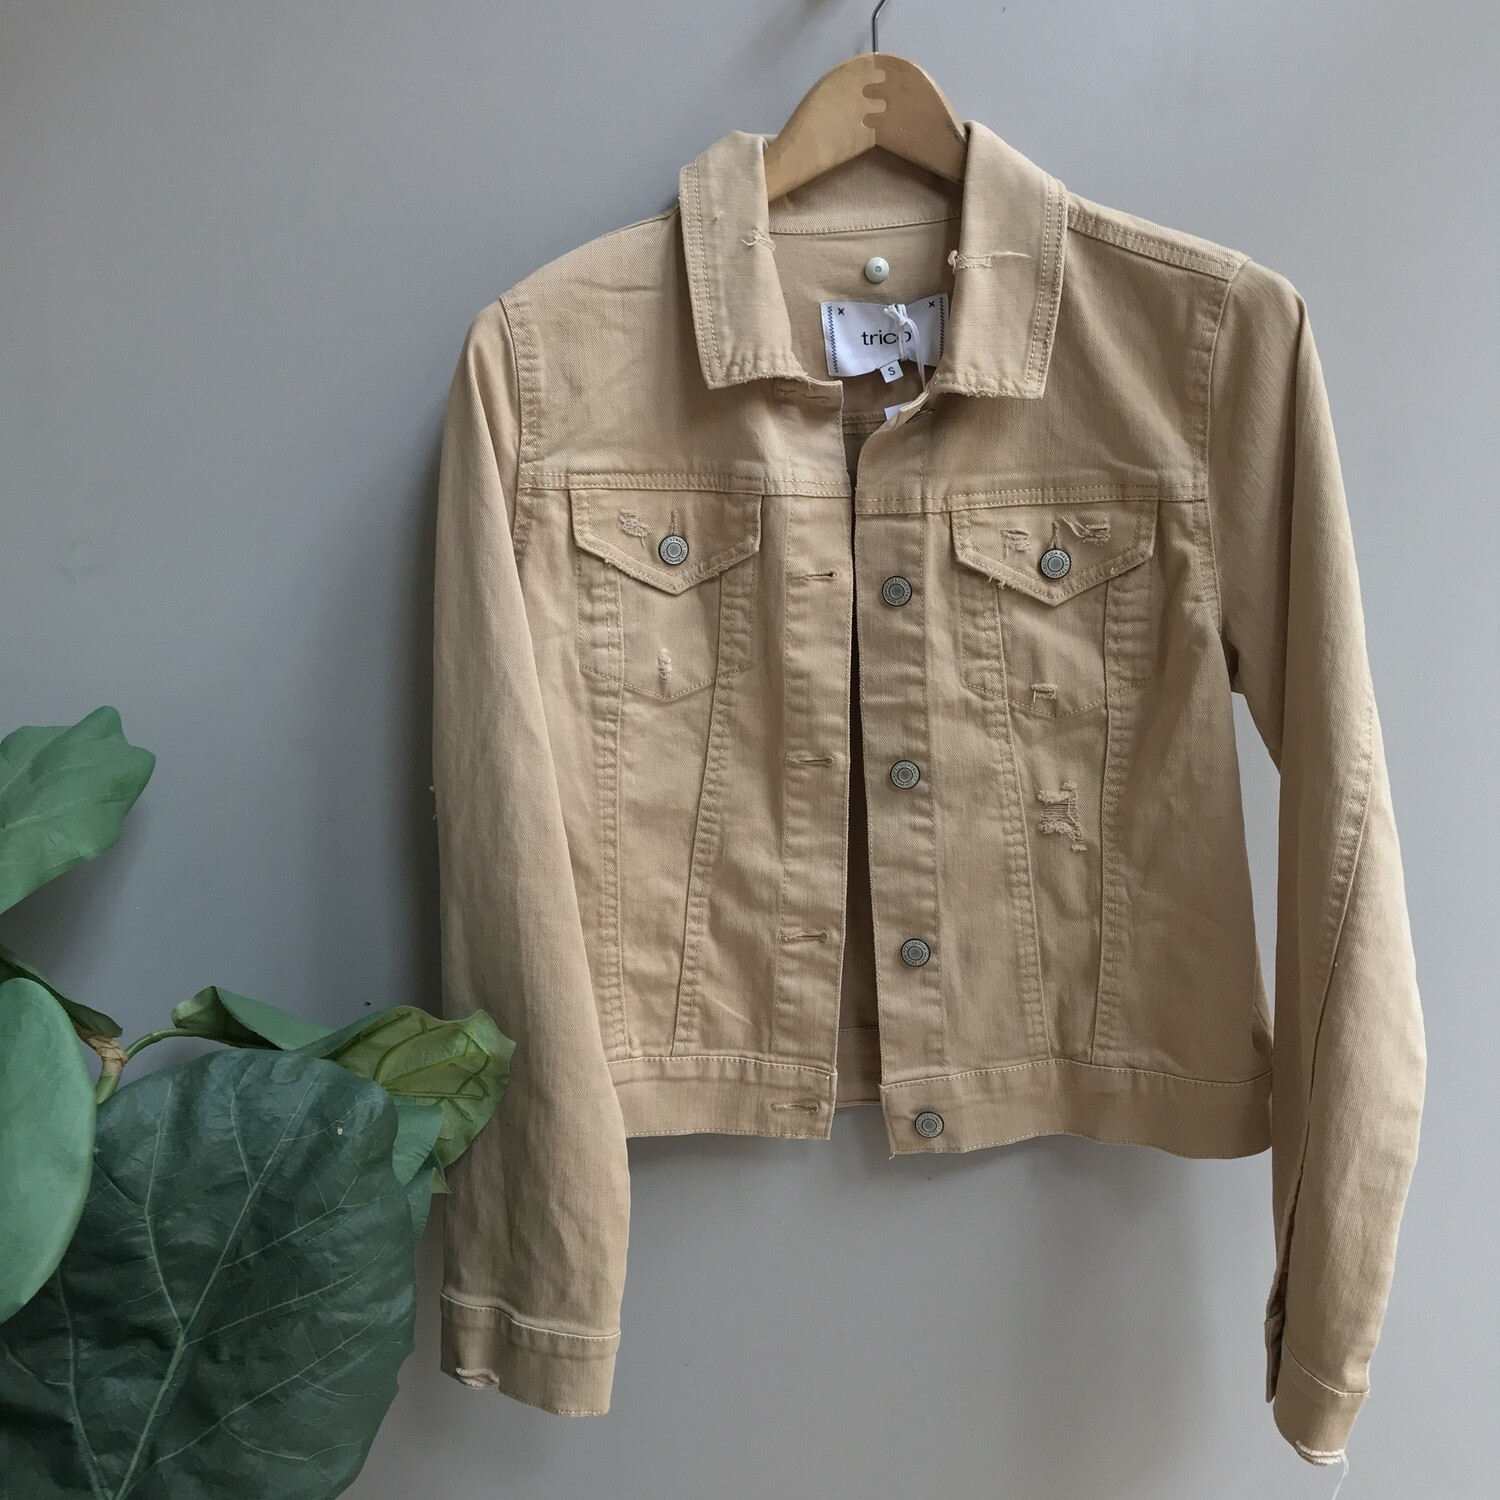 Colored Distressed Jacket